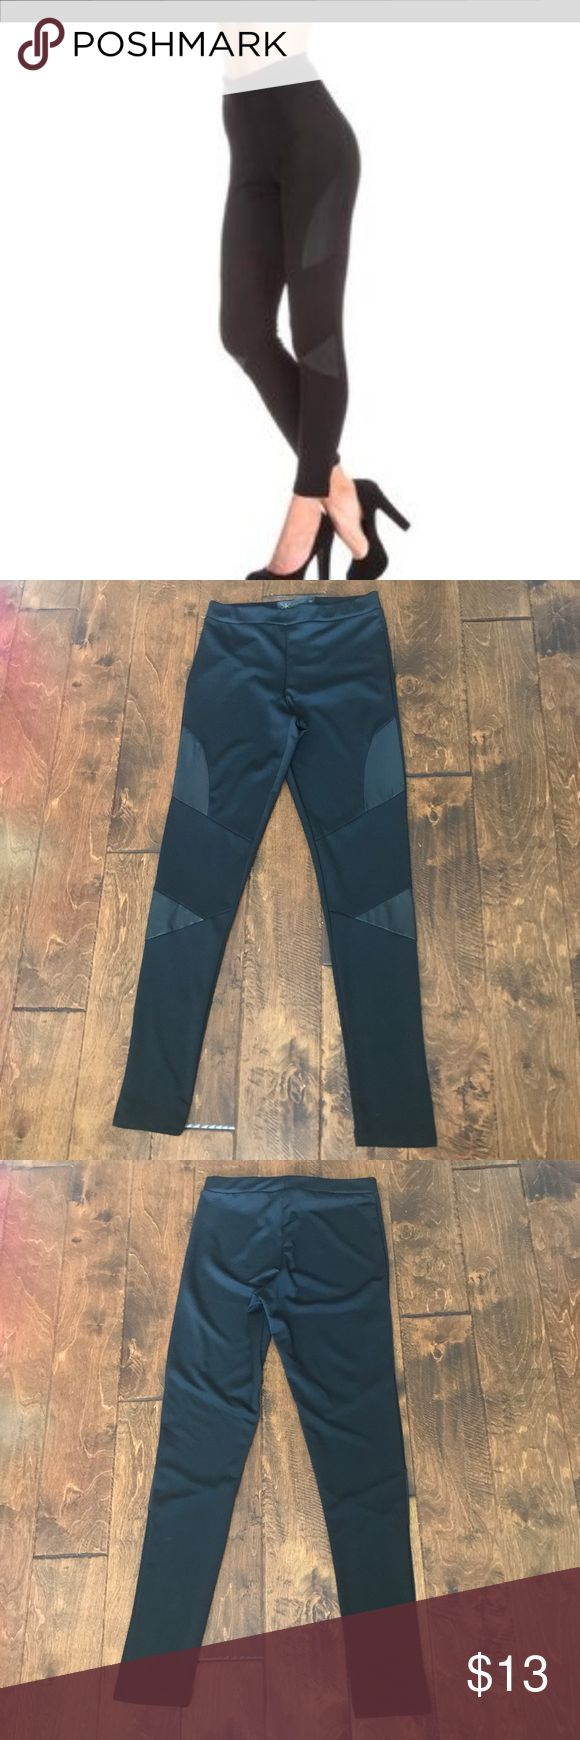 Kim Kardashian Leggings Kim Kardashian Collection, black leggings. Sz medium.  96% Polyester 4% elastane. Only wore once. In excellent condition! No rips or stains. Kim Kardashian Collection Pants Leggings